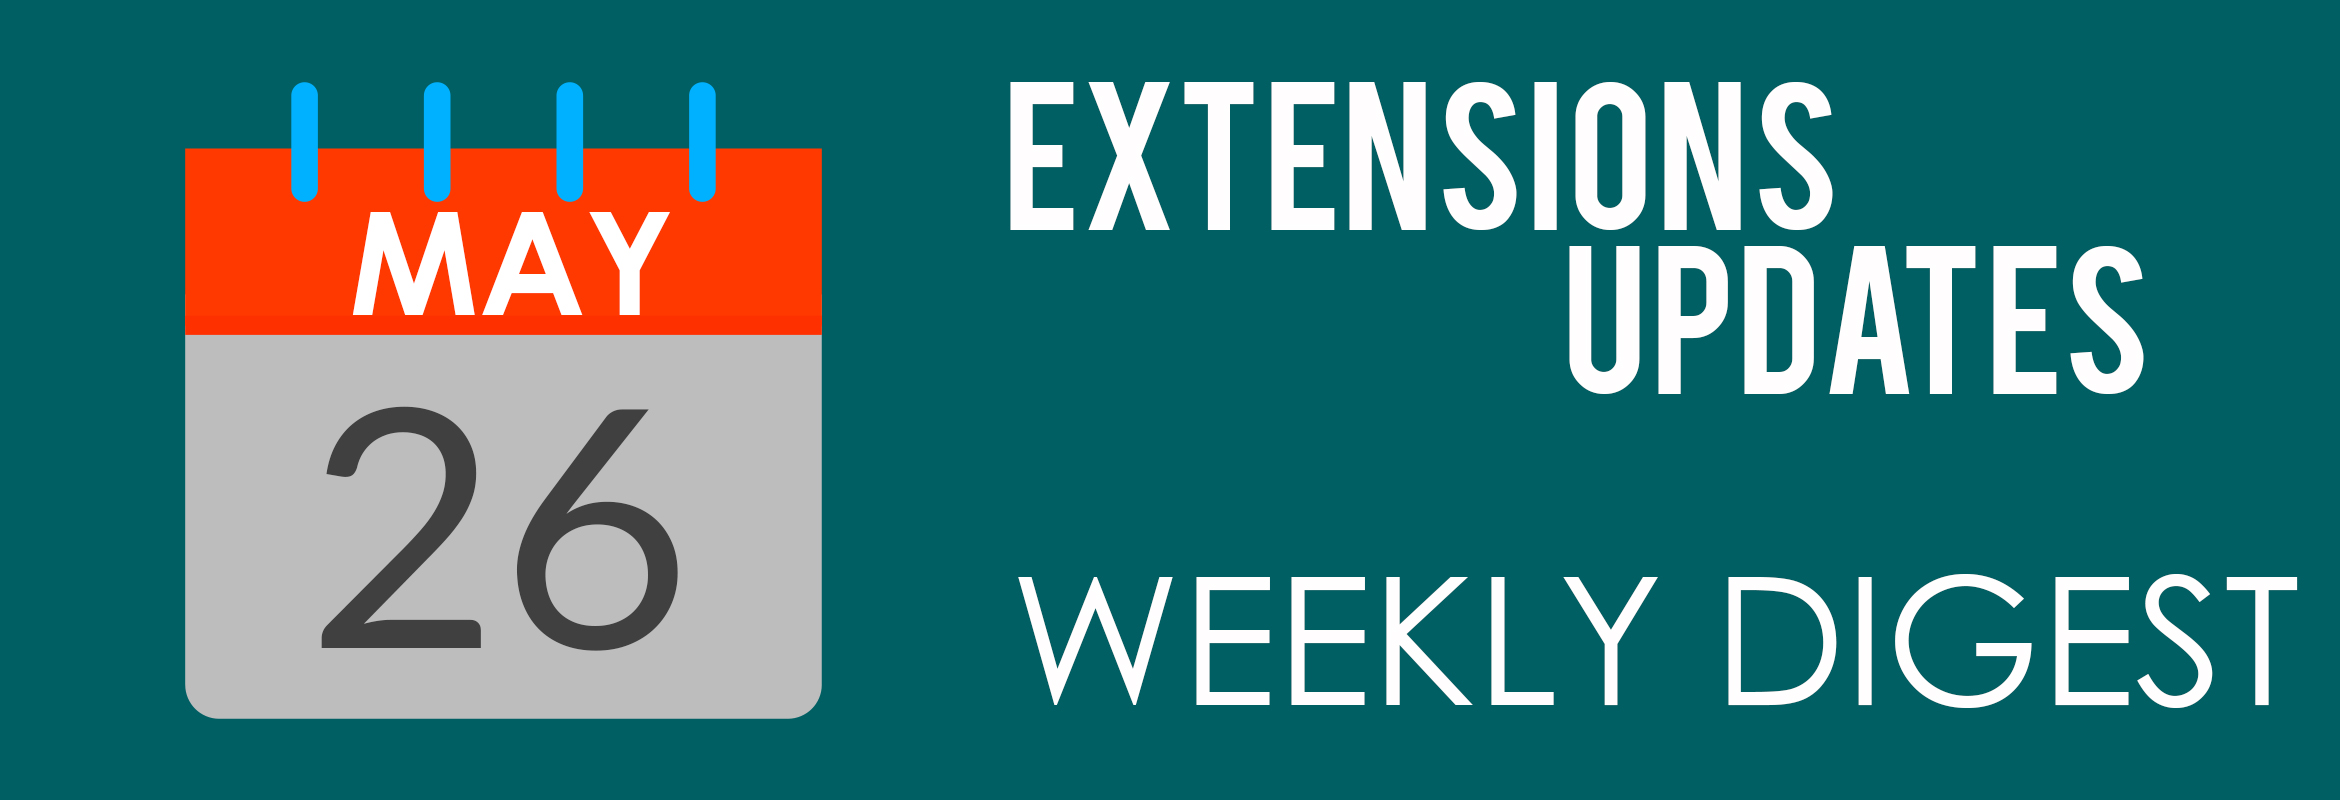 Mirasvit Extensions Update Weekly Digest